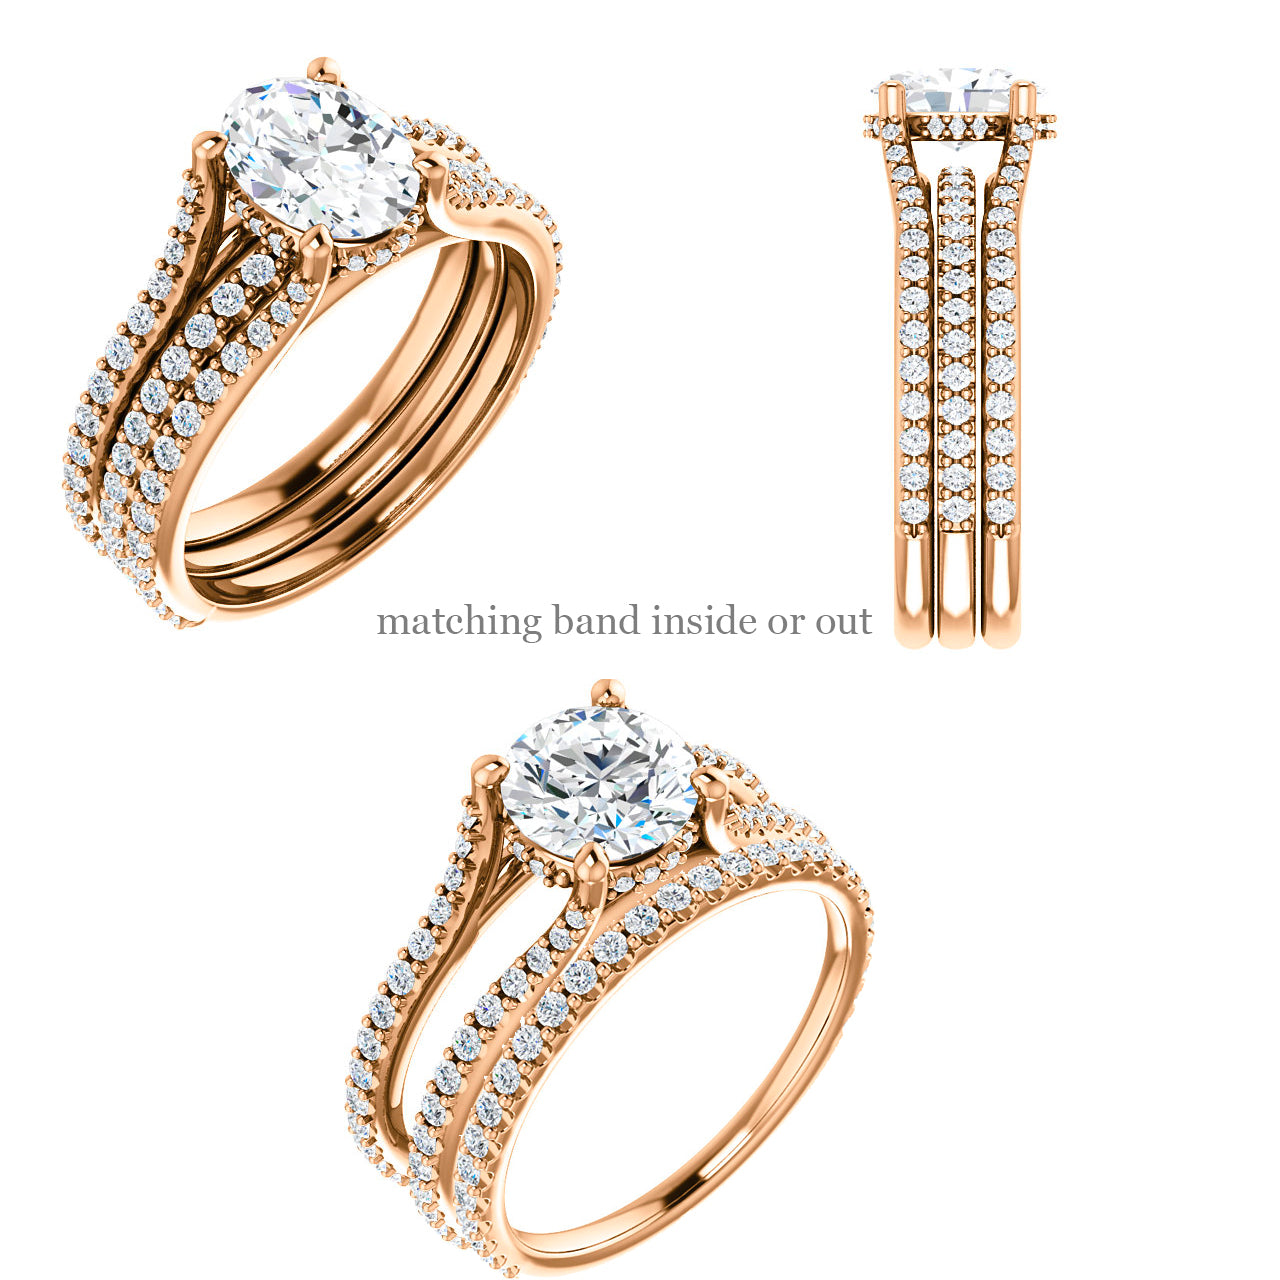 Ariel setting - Midwinter Co. Alternative Bridal Rings and Modern Fine Jewelry